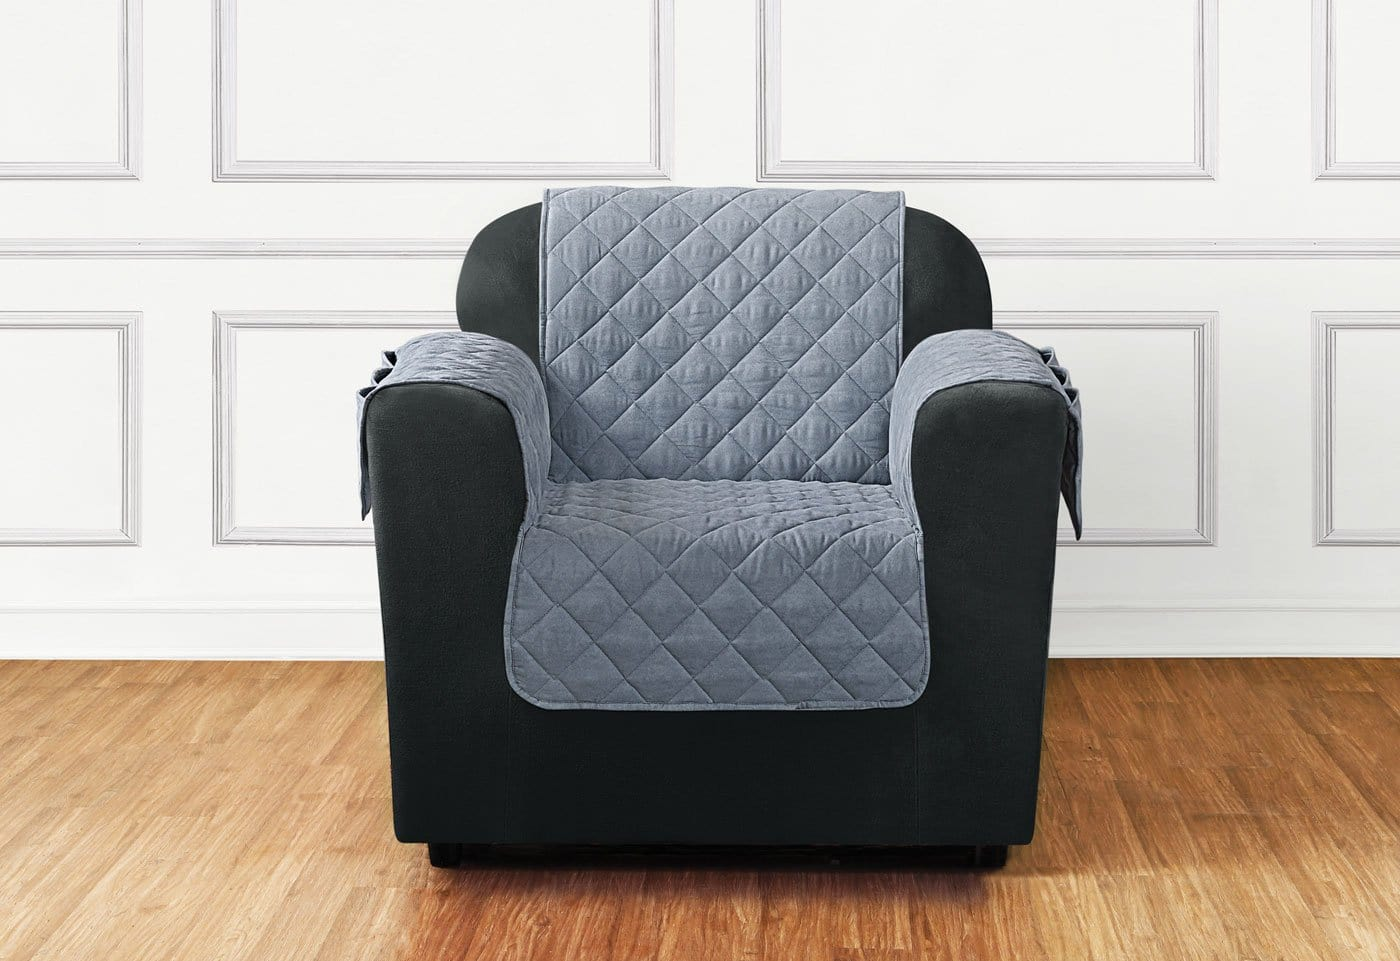 Breathable Mesh Chair Furniture Cover One Piece Pet Furniture Cover Polyester Machine Washable - Chair / Mist